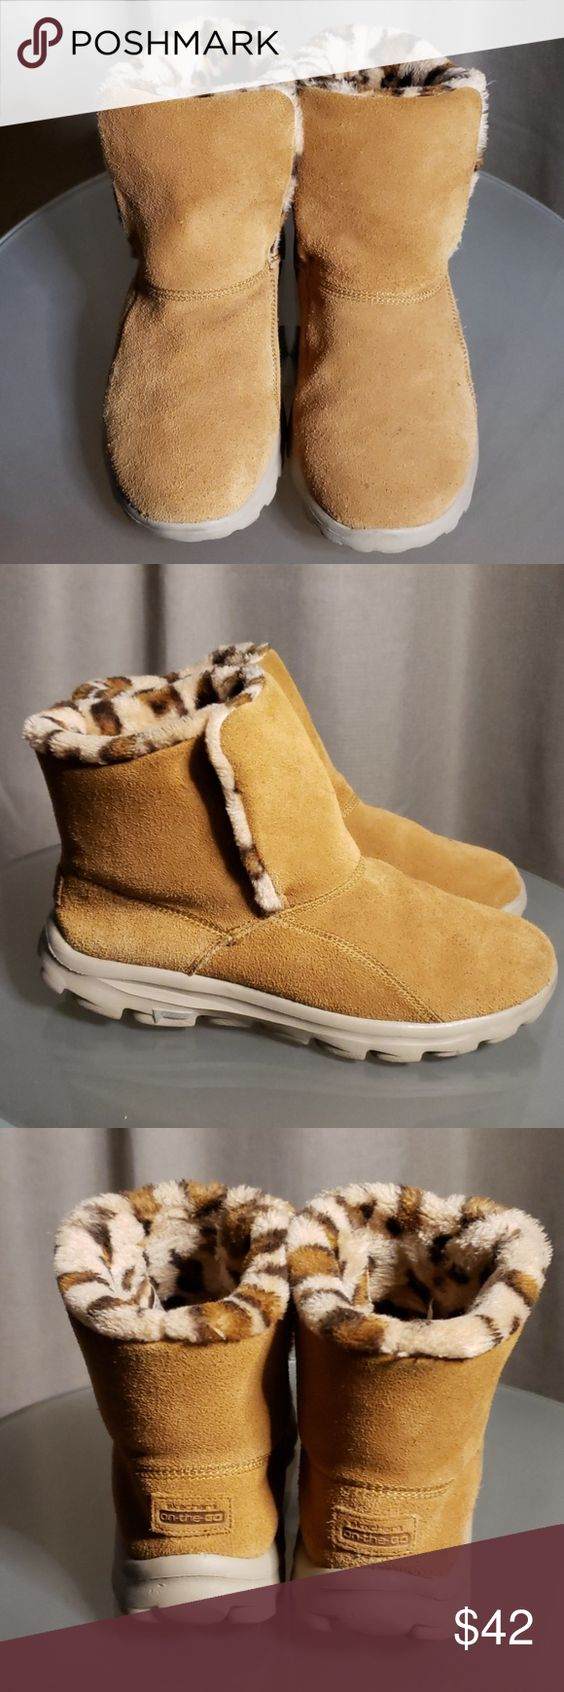 Brown Ugg Ankle Boots Neumel Waterproof Work Boots, HD Png